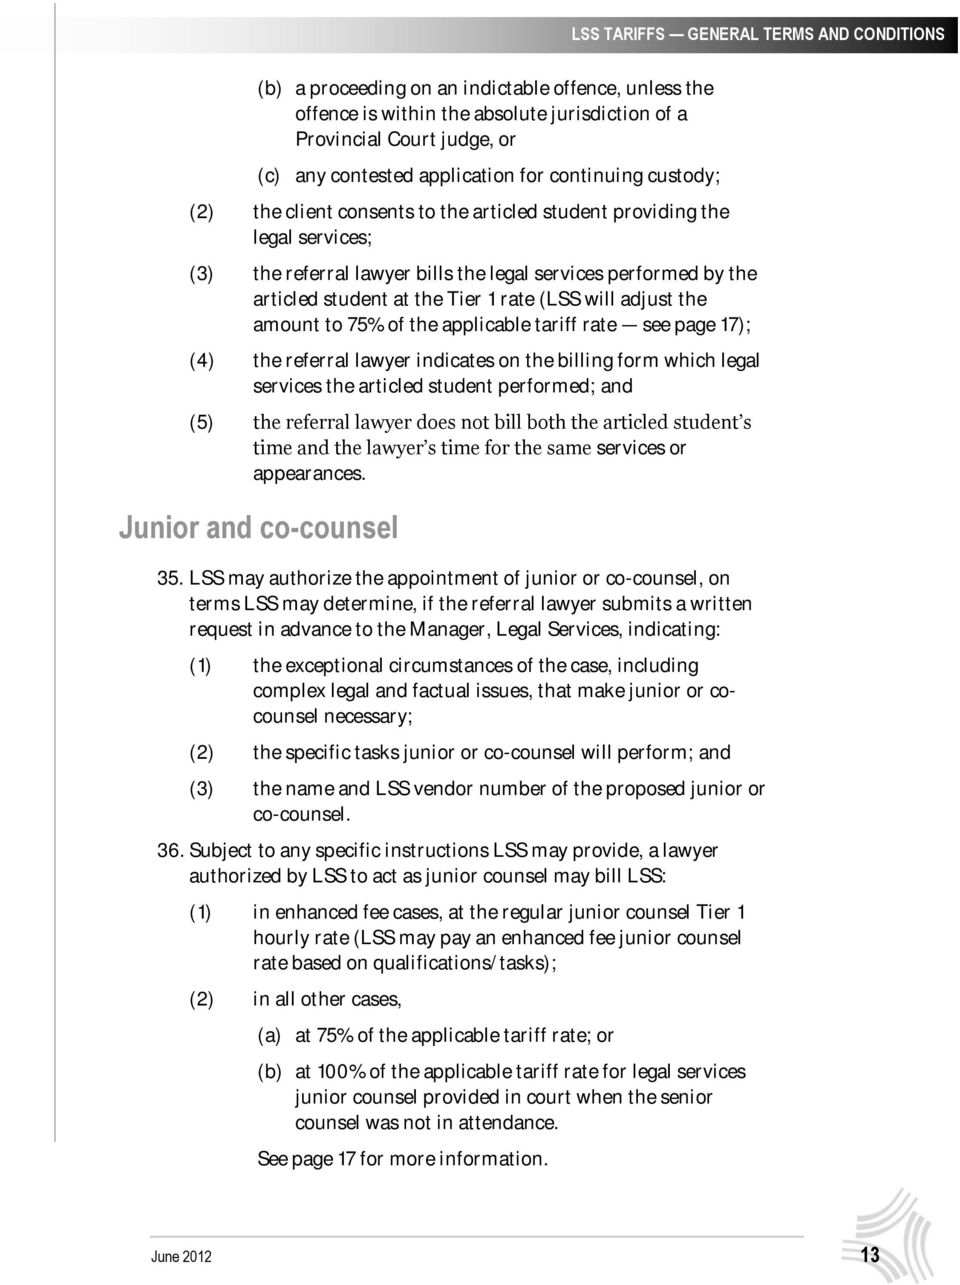 of the applicable tariff rate see page 17); (4) the referral lawyer indicates on the billing form which legal services the articled student performed; and (5) the referral lawyer does not bill both